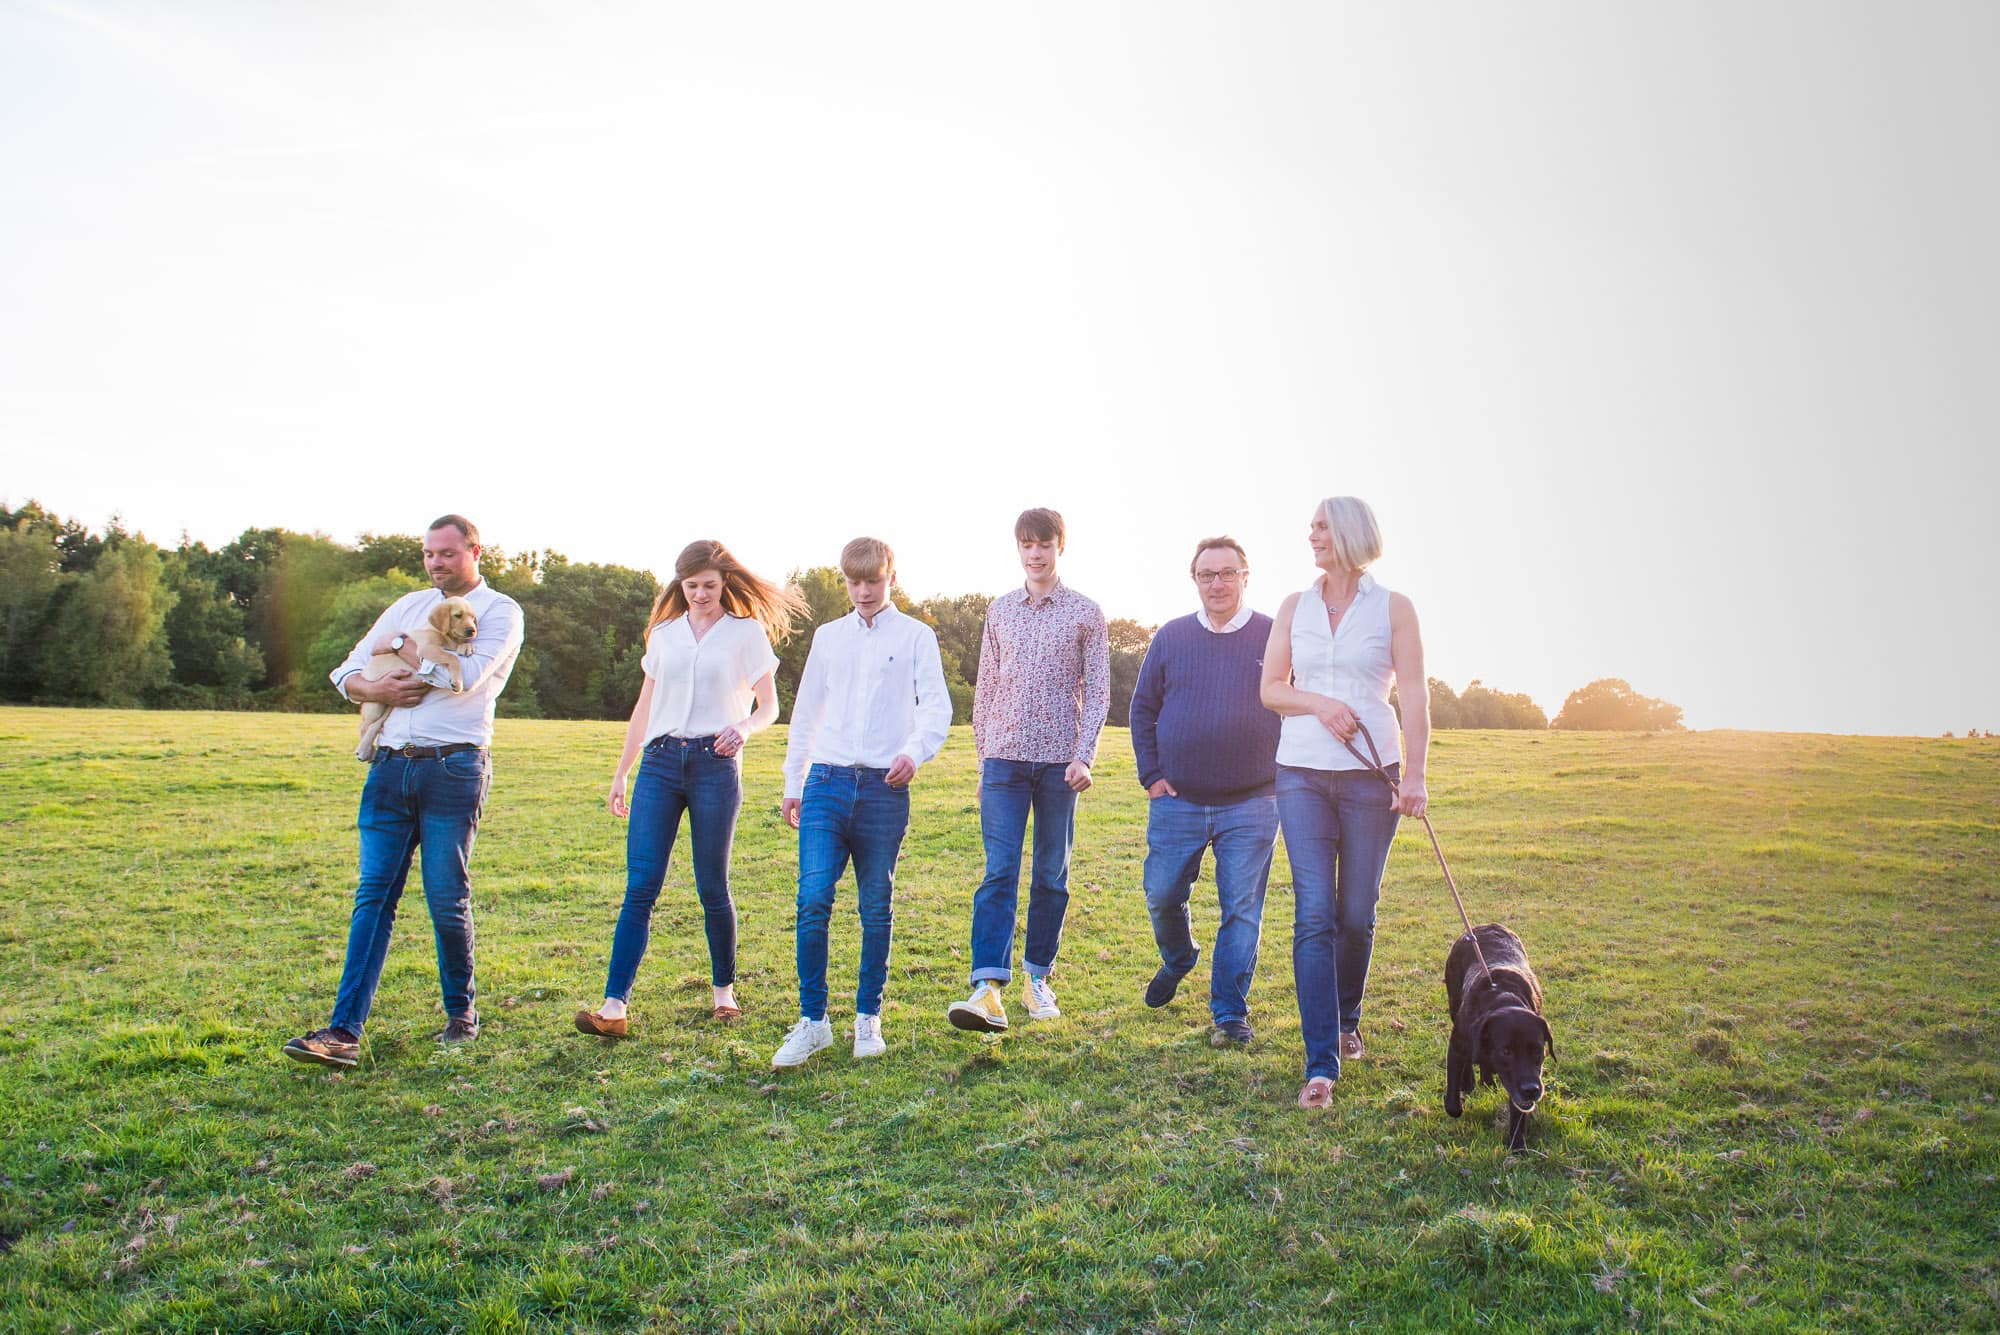 Family waking in the sunshine with their dog on a family photoshoot